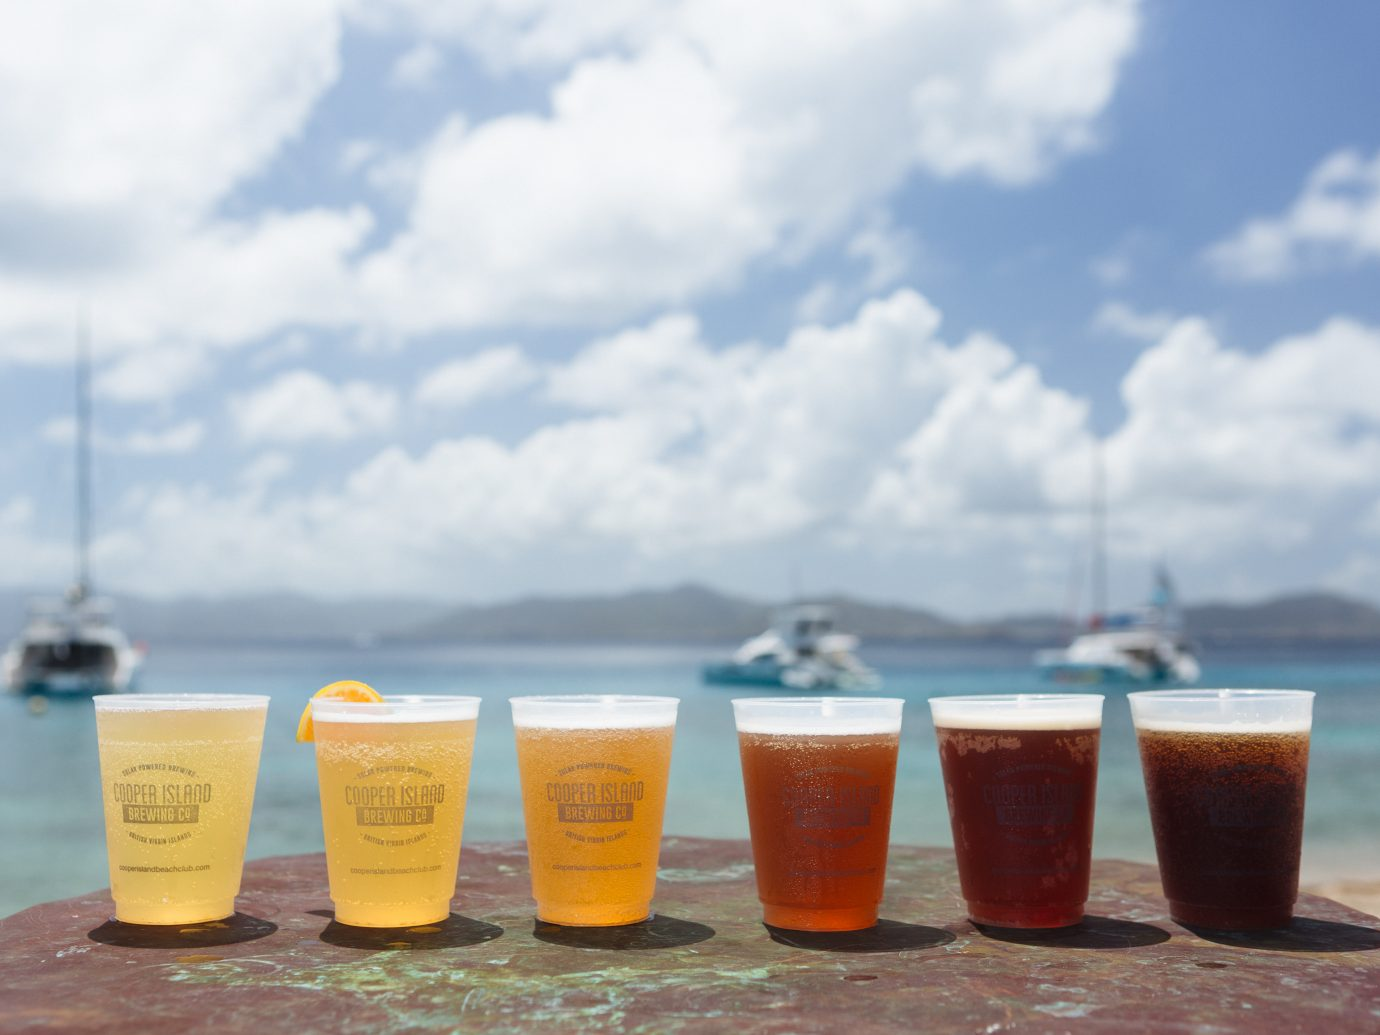 six different beers in a row from lightest to darkest on table with beach in background